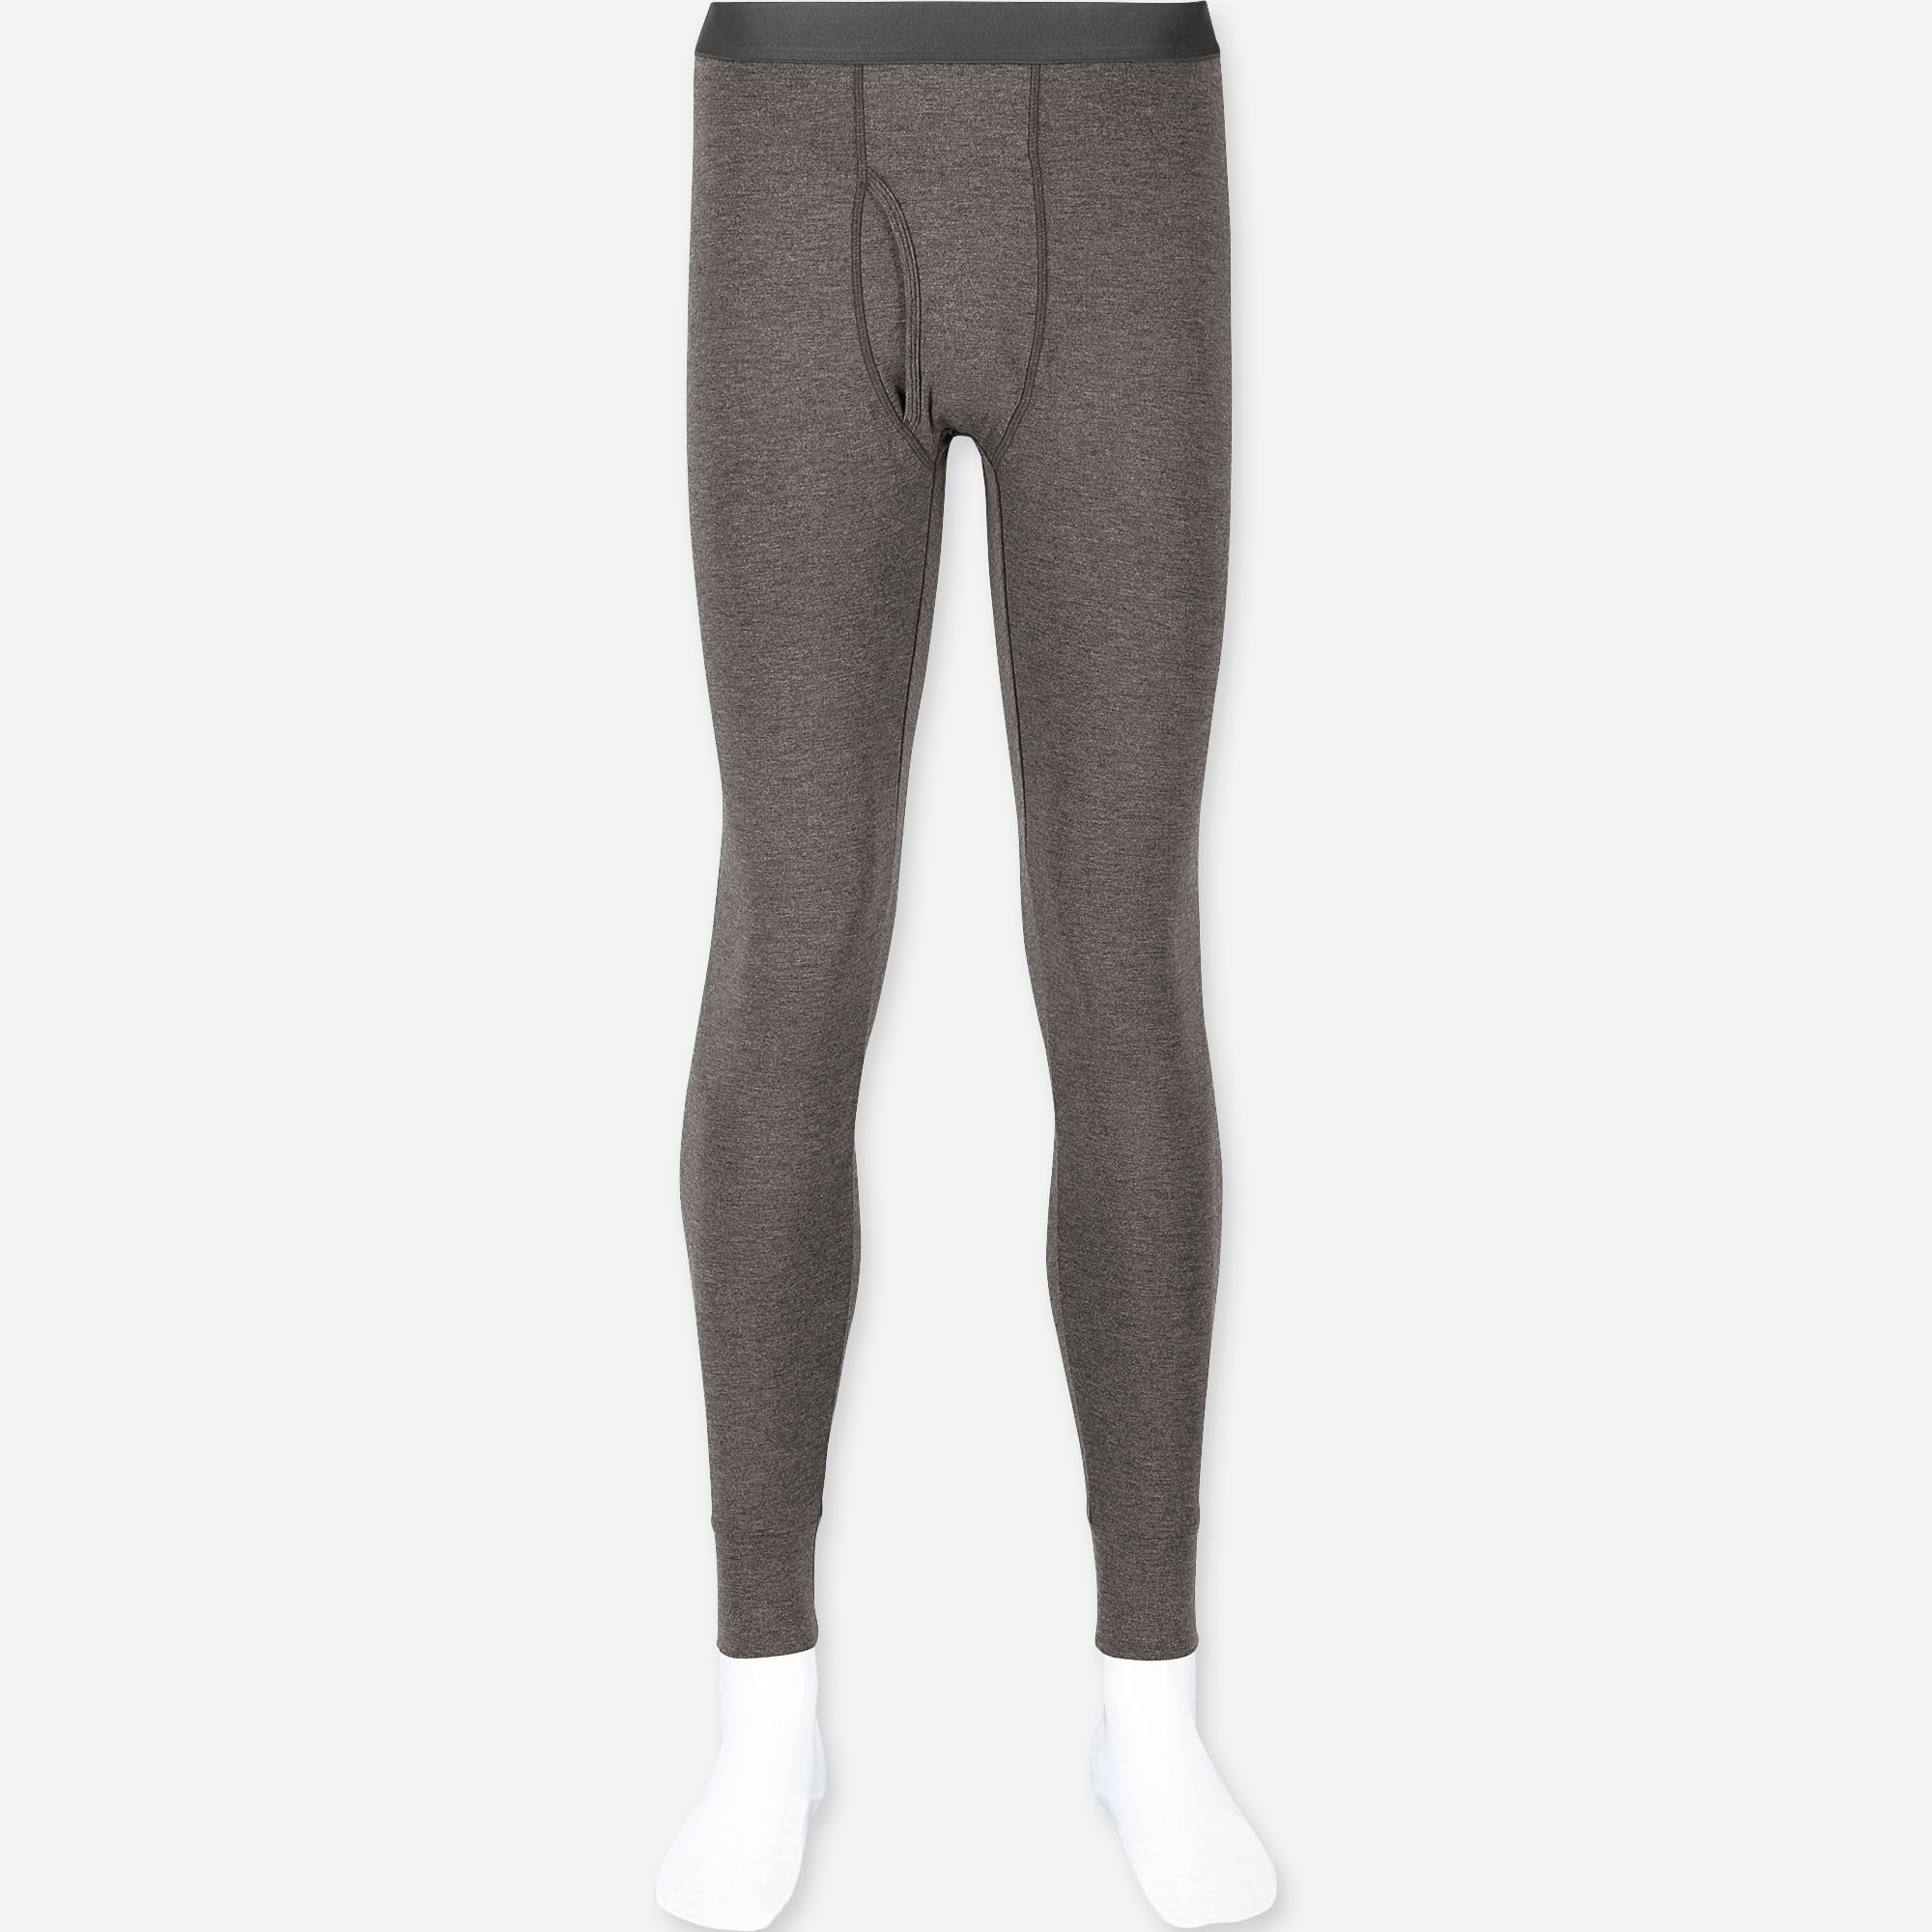 MEN HEATTECH EXTRA WARM LONG JOHNS